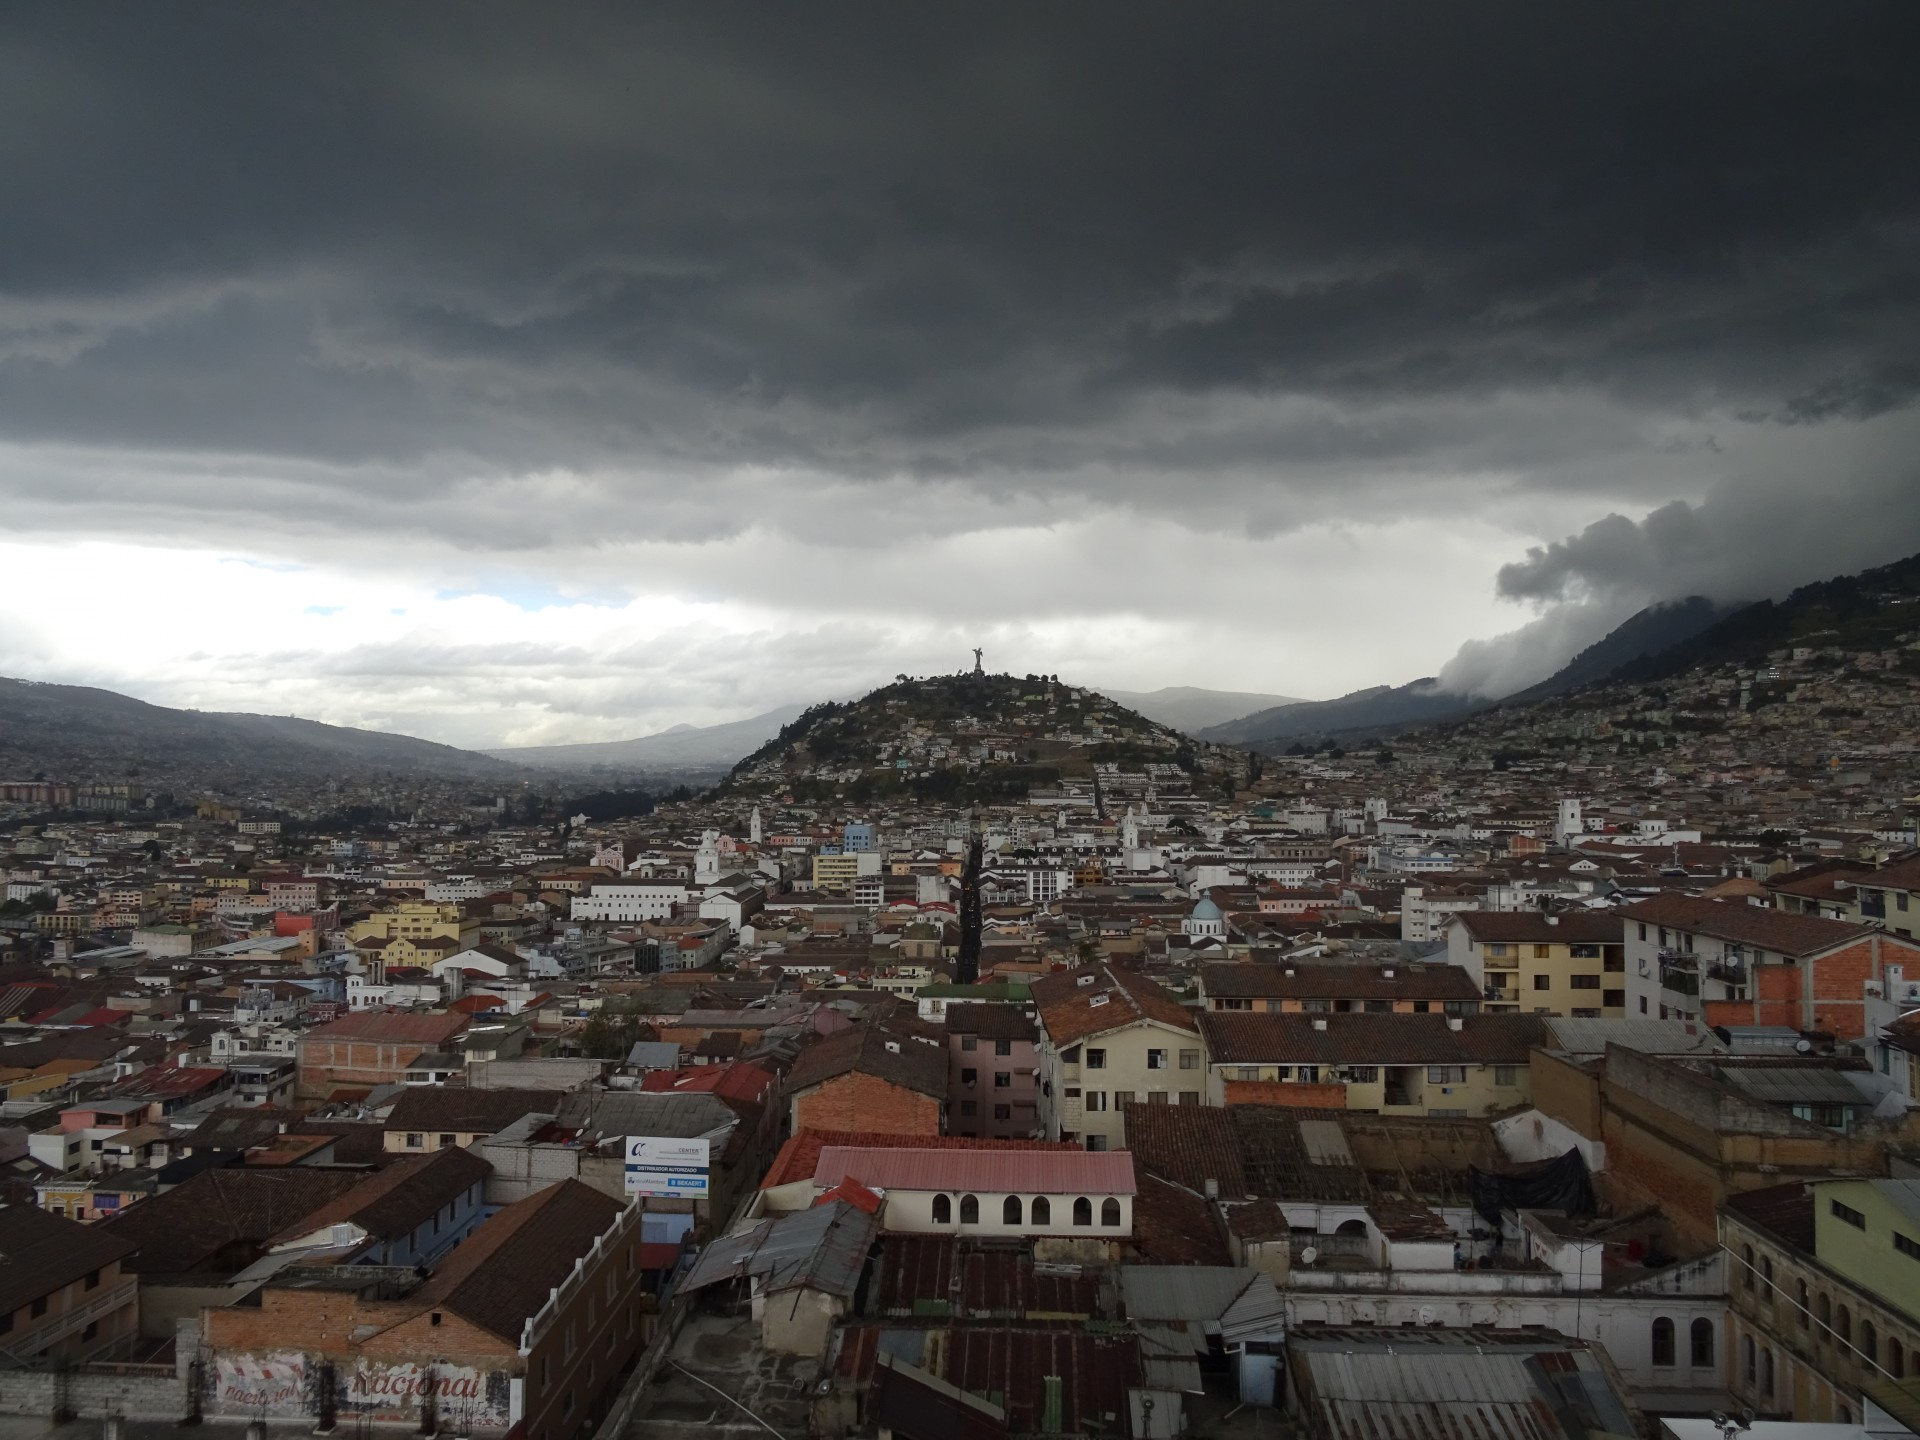 Quito. With added moody clouds.